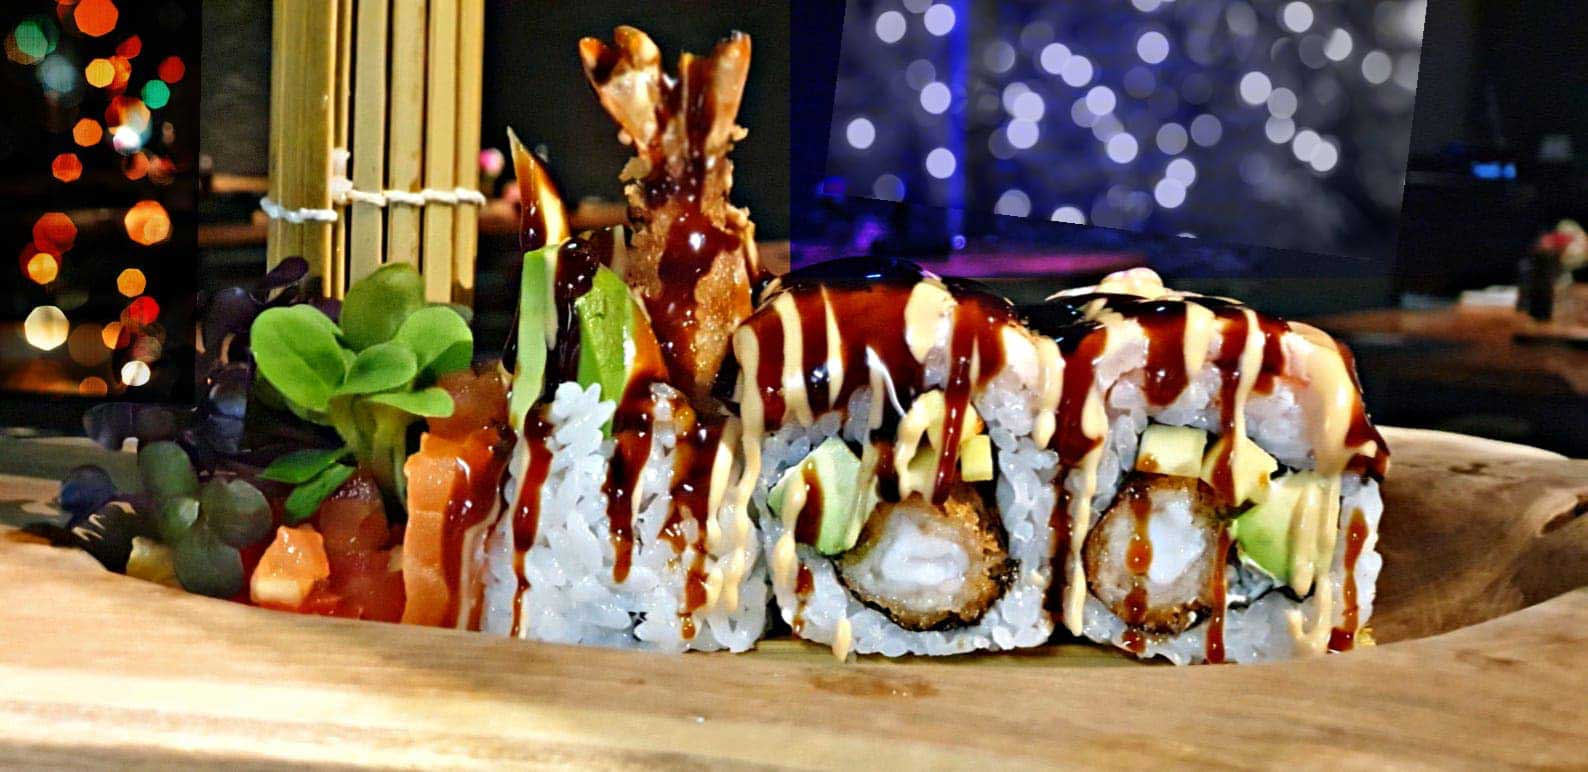 ComMami Sushi Worms - Indochine kitchen & Sushi bar